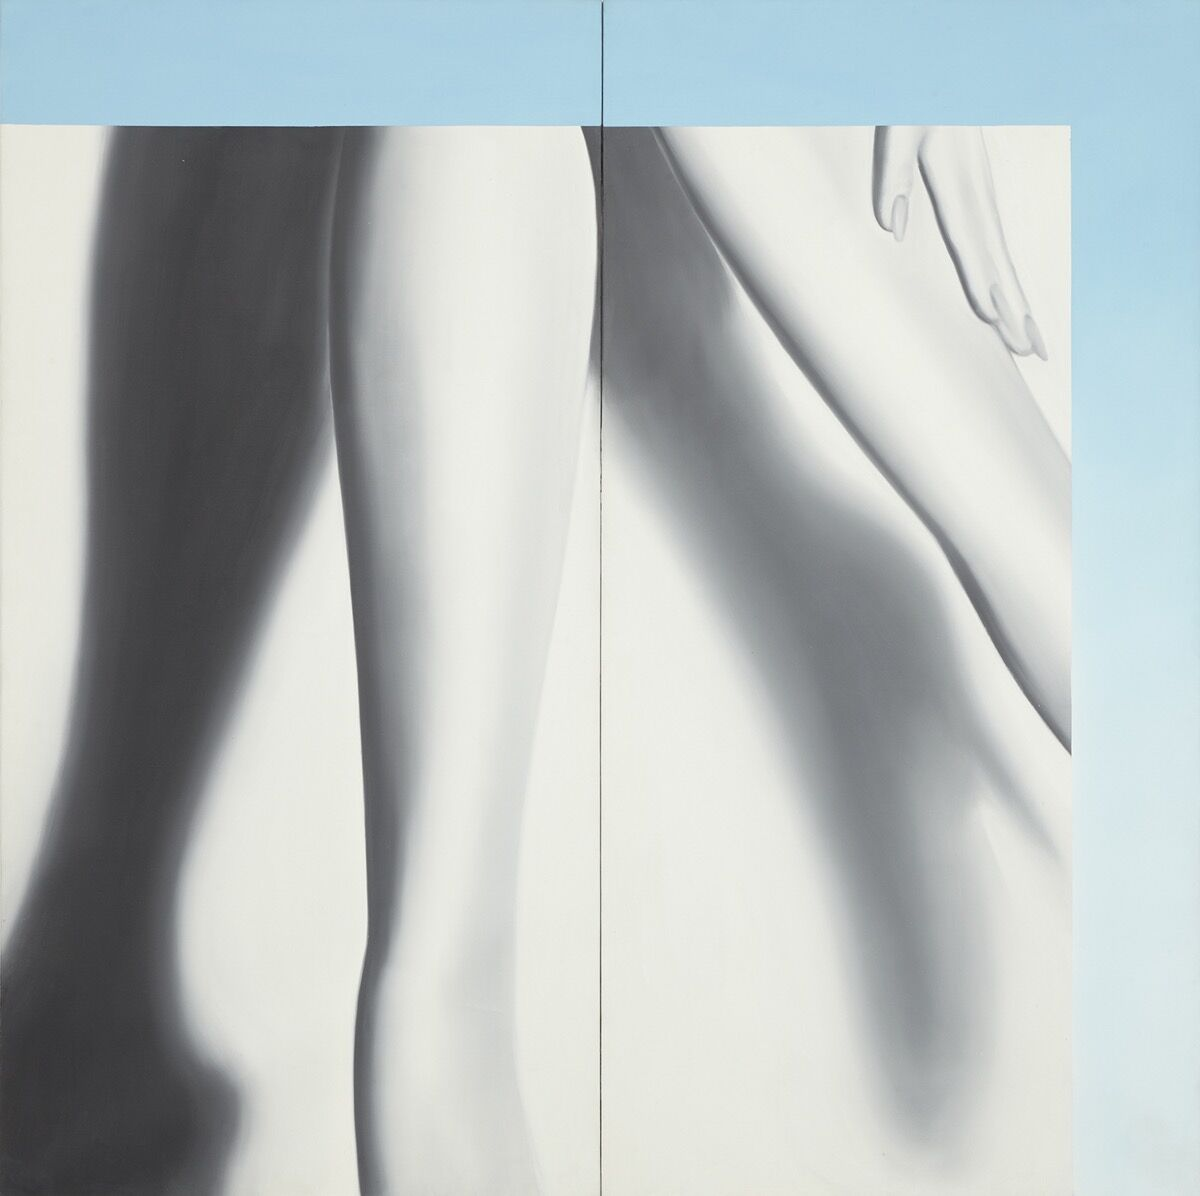 James Rosenquist, Above the Square , 1964. © Estate of James Rosenquist / Licensed by VAGA at ARS, New York. Courtesy of Acquavella Galleries.